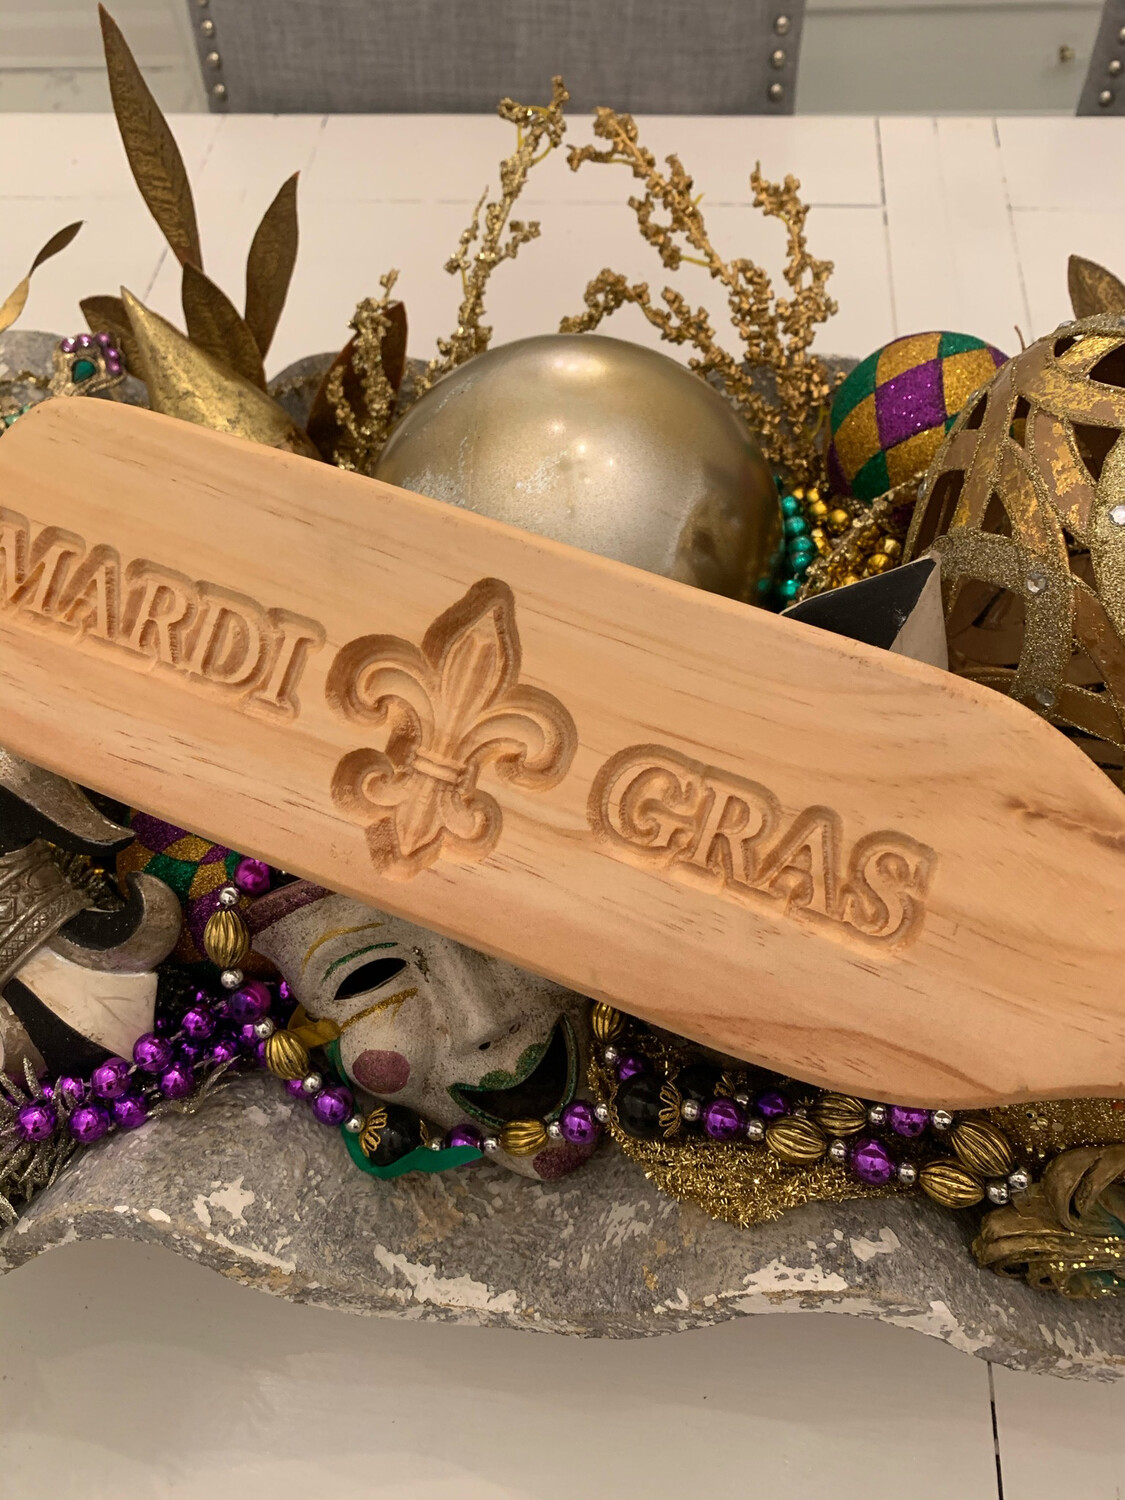 Wooden Novelty Paddle Mardi Gras